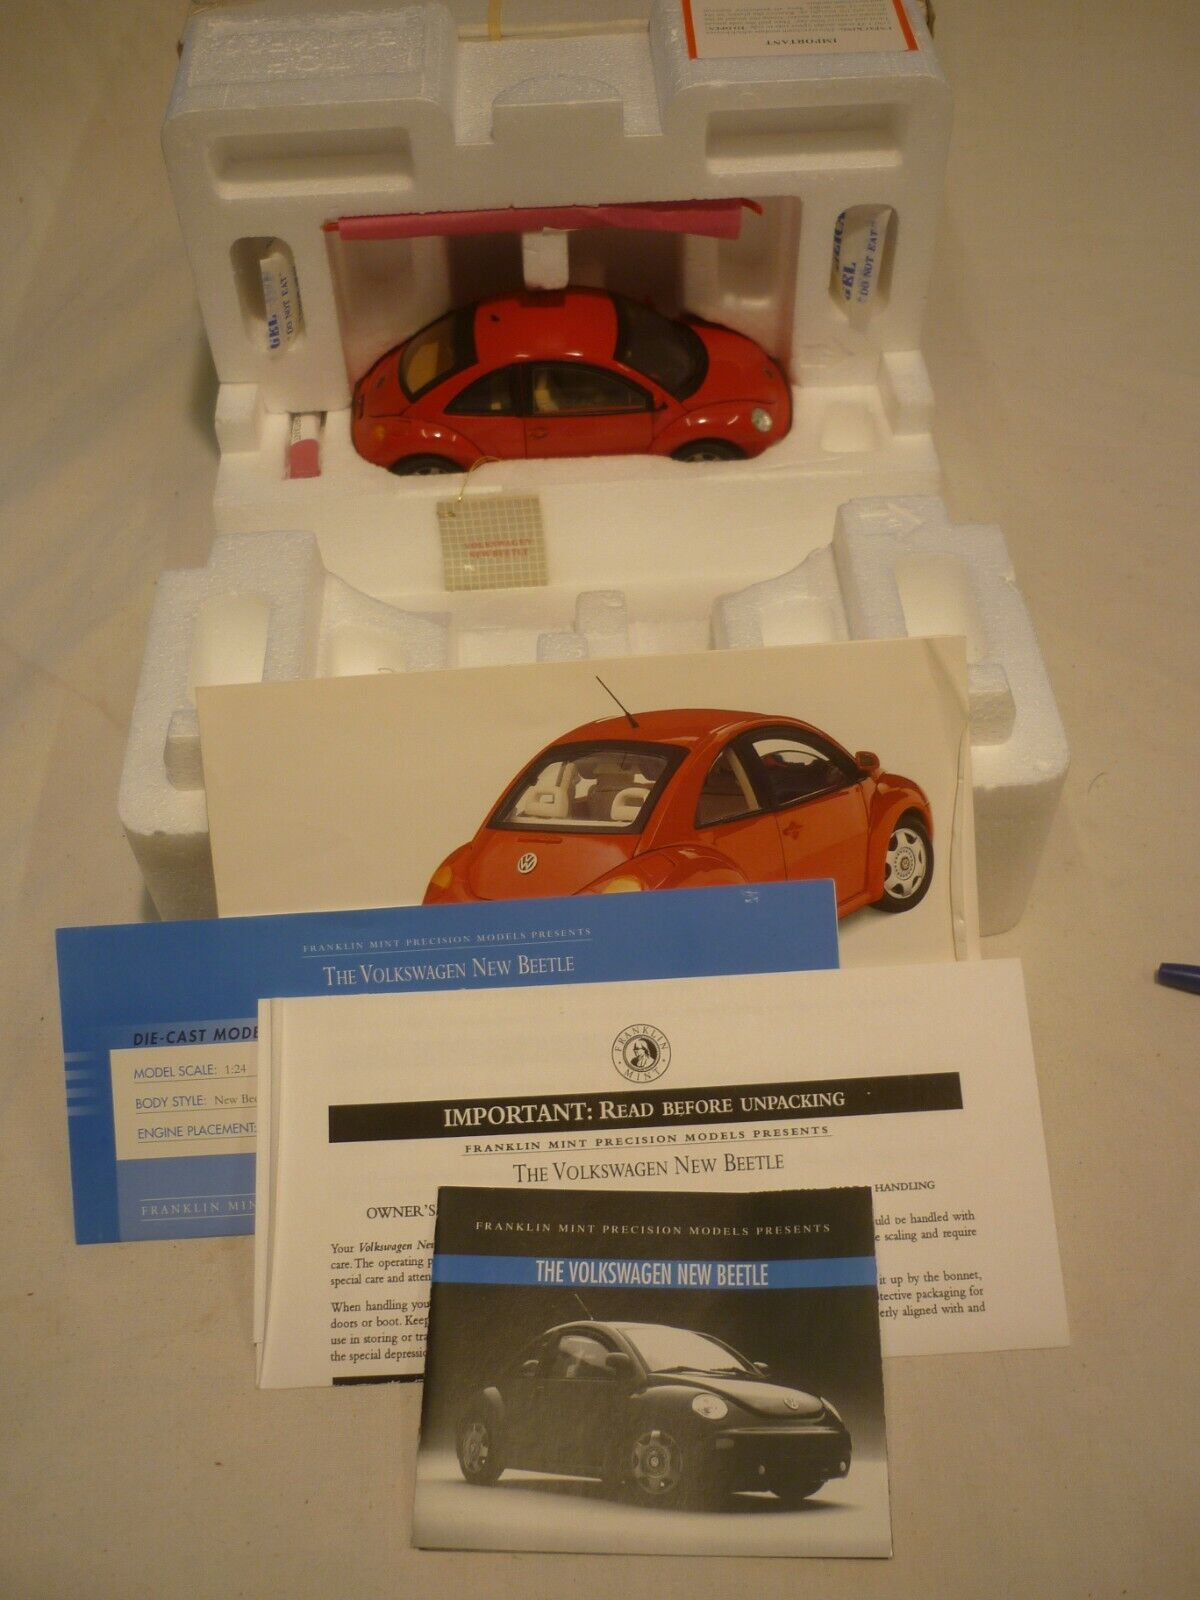 Un Franklin Comme neuf scale model of a 1989 VOLKSWAGEN BEETLE, boxed & papiers